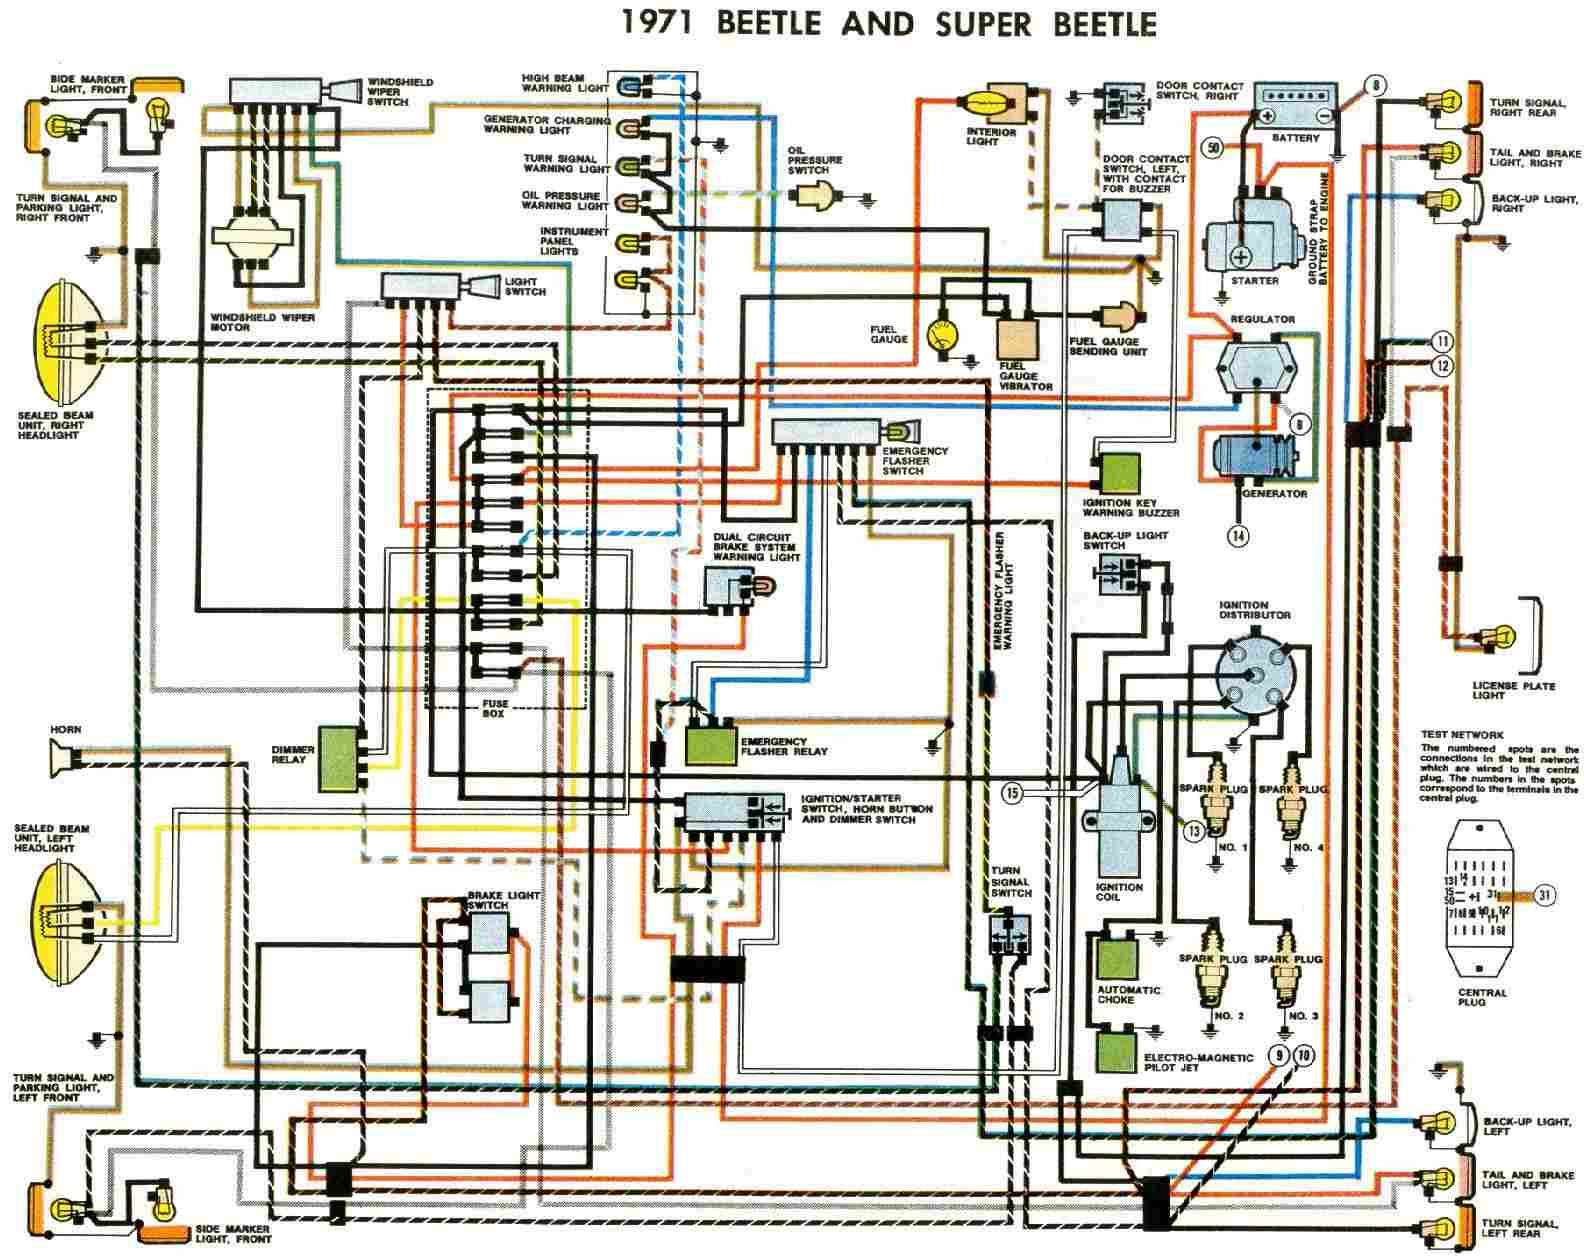 2010 Civic Wiring Diagram Simple Guide About Honda Ac Free Auto 1971 Vw Beetle And Super Speaker Wire